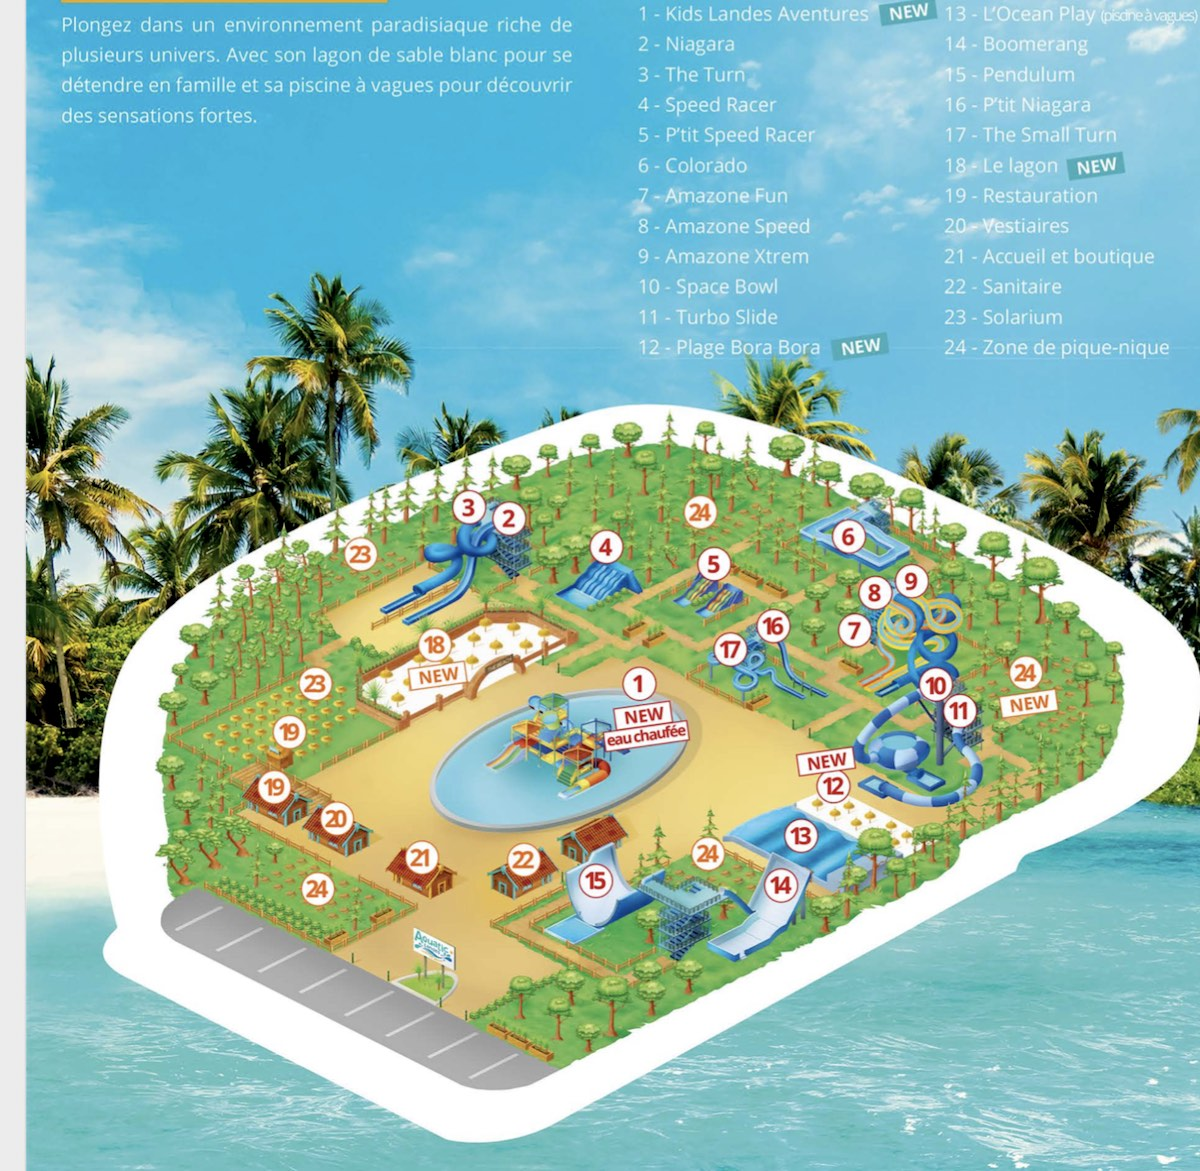 Plan aquatic landes